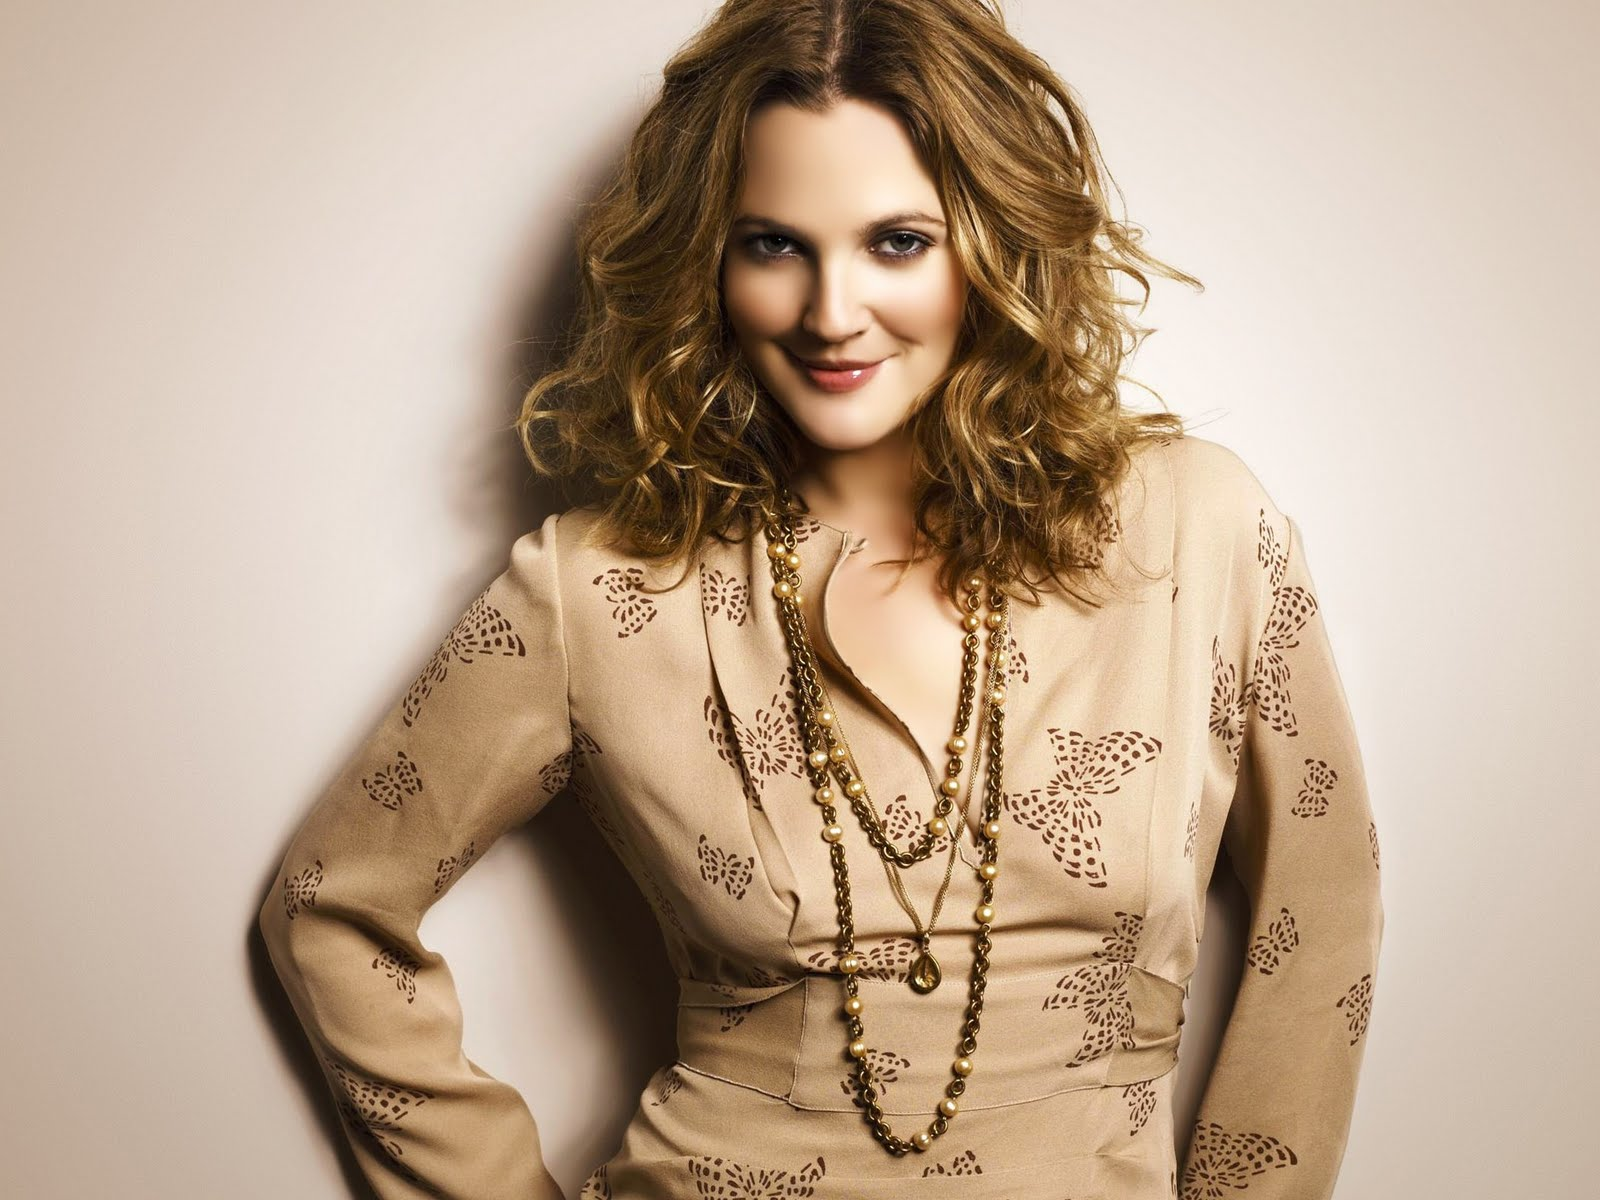 drew barrymore beautiful wallpaper 136 1920 x 1440 1 drew barrymore sexy nude indian global hot sexy boobs nude boobs ass hot tamil indian hot high quality wallpapers hd gallery pictures misc wallpapers WENN/FayesVision | View Original